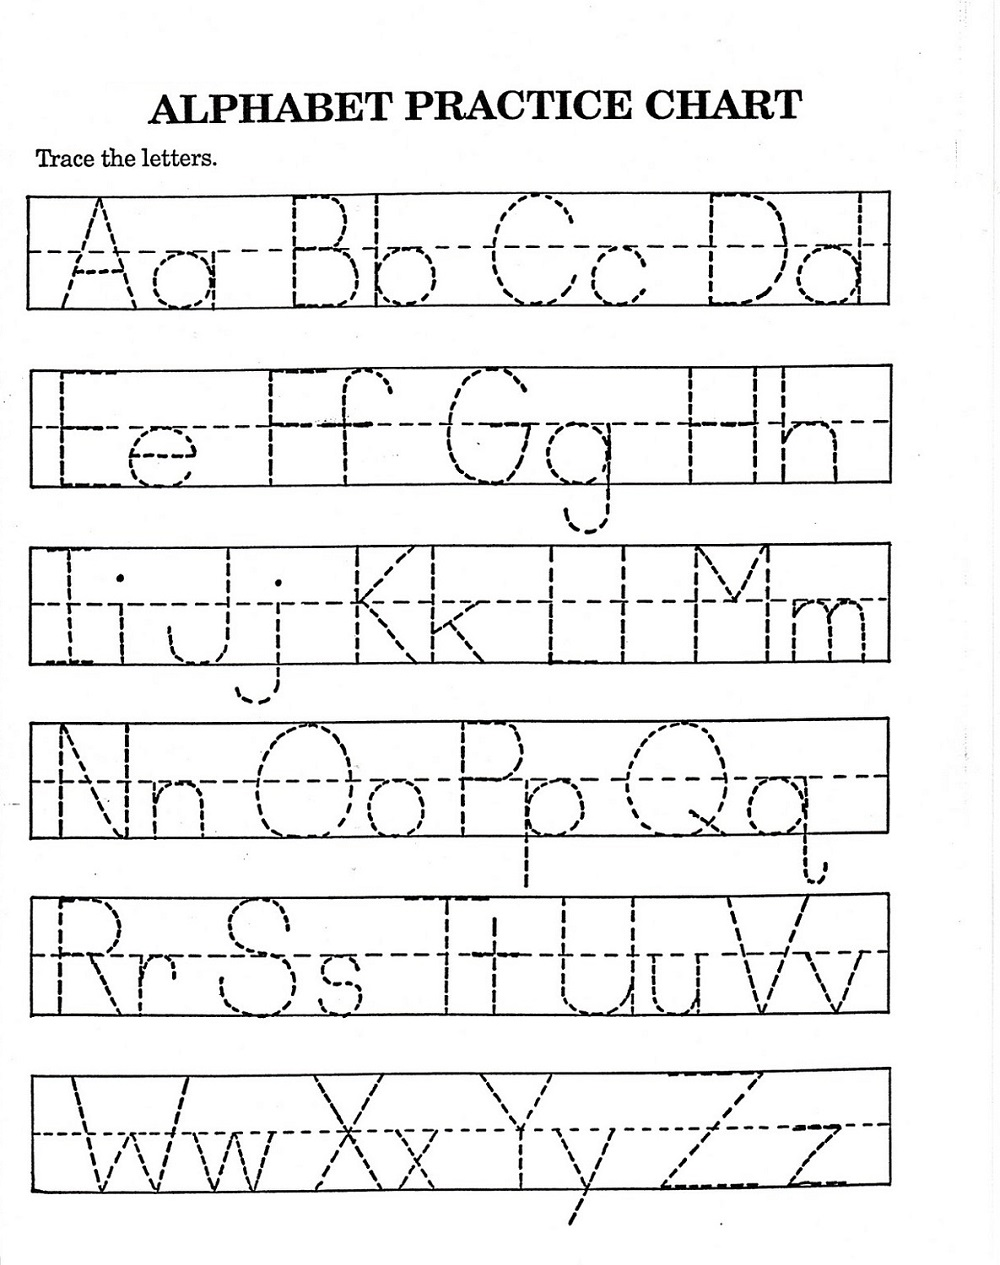 traceable alphabet worksheets a-z activity